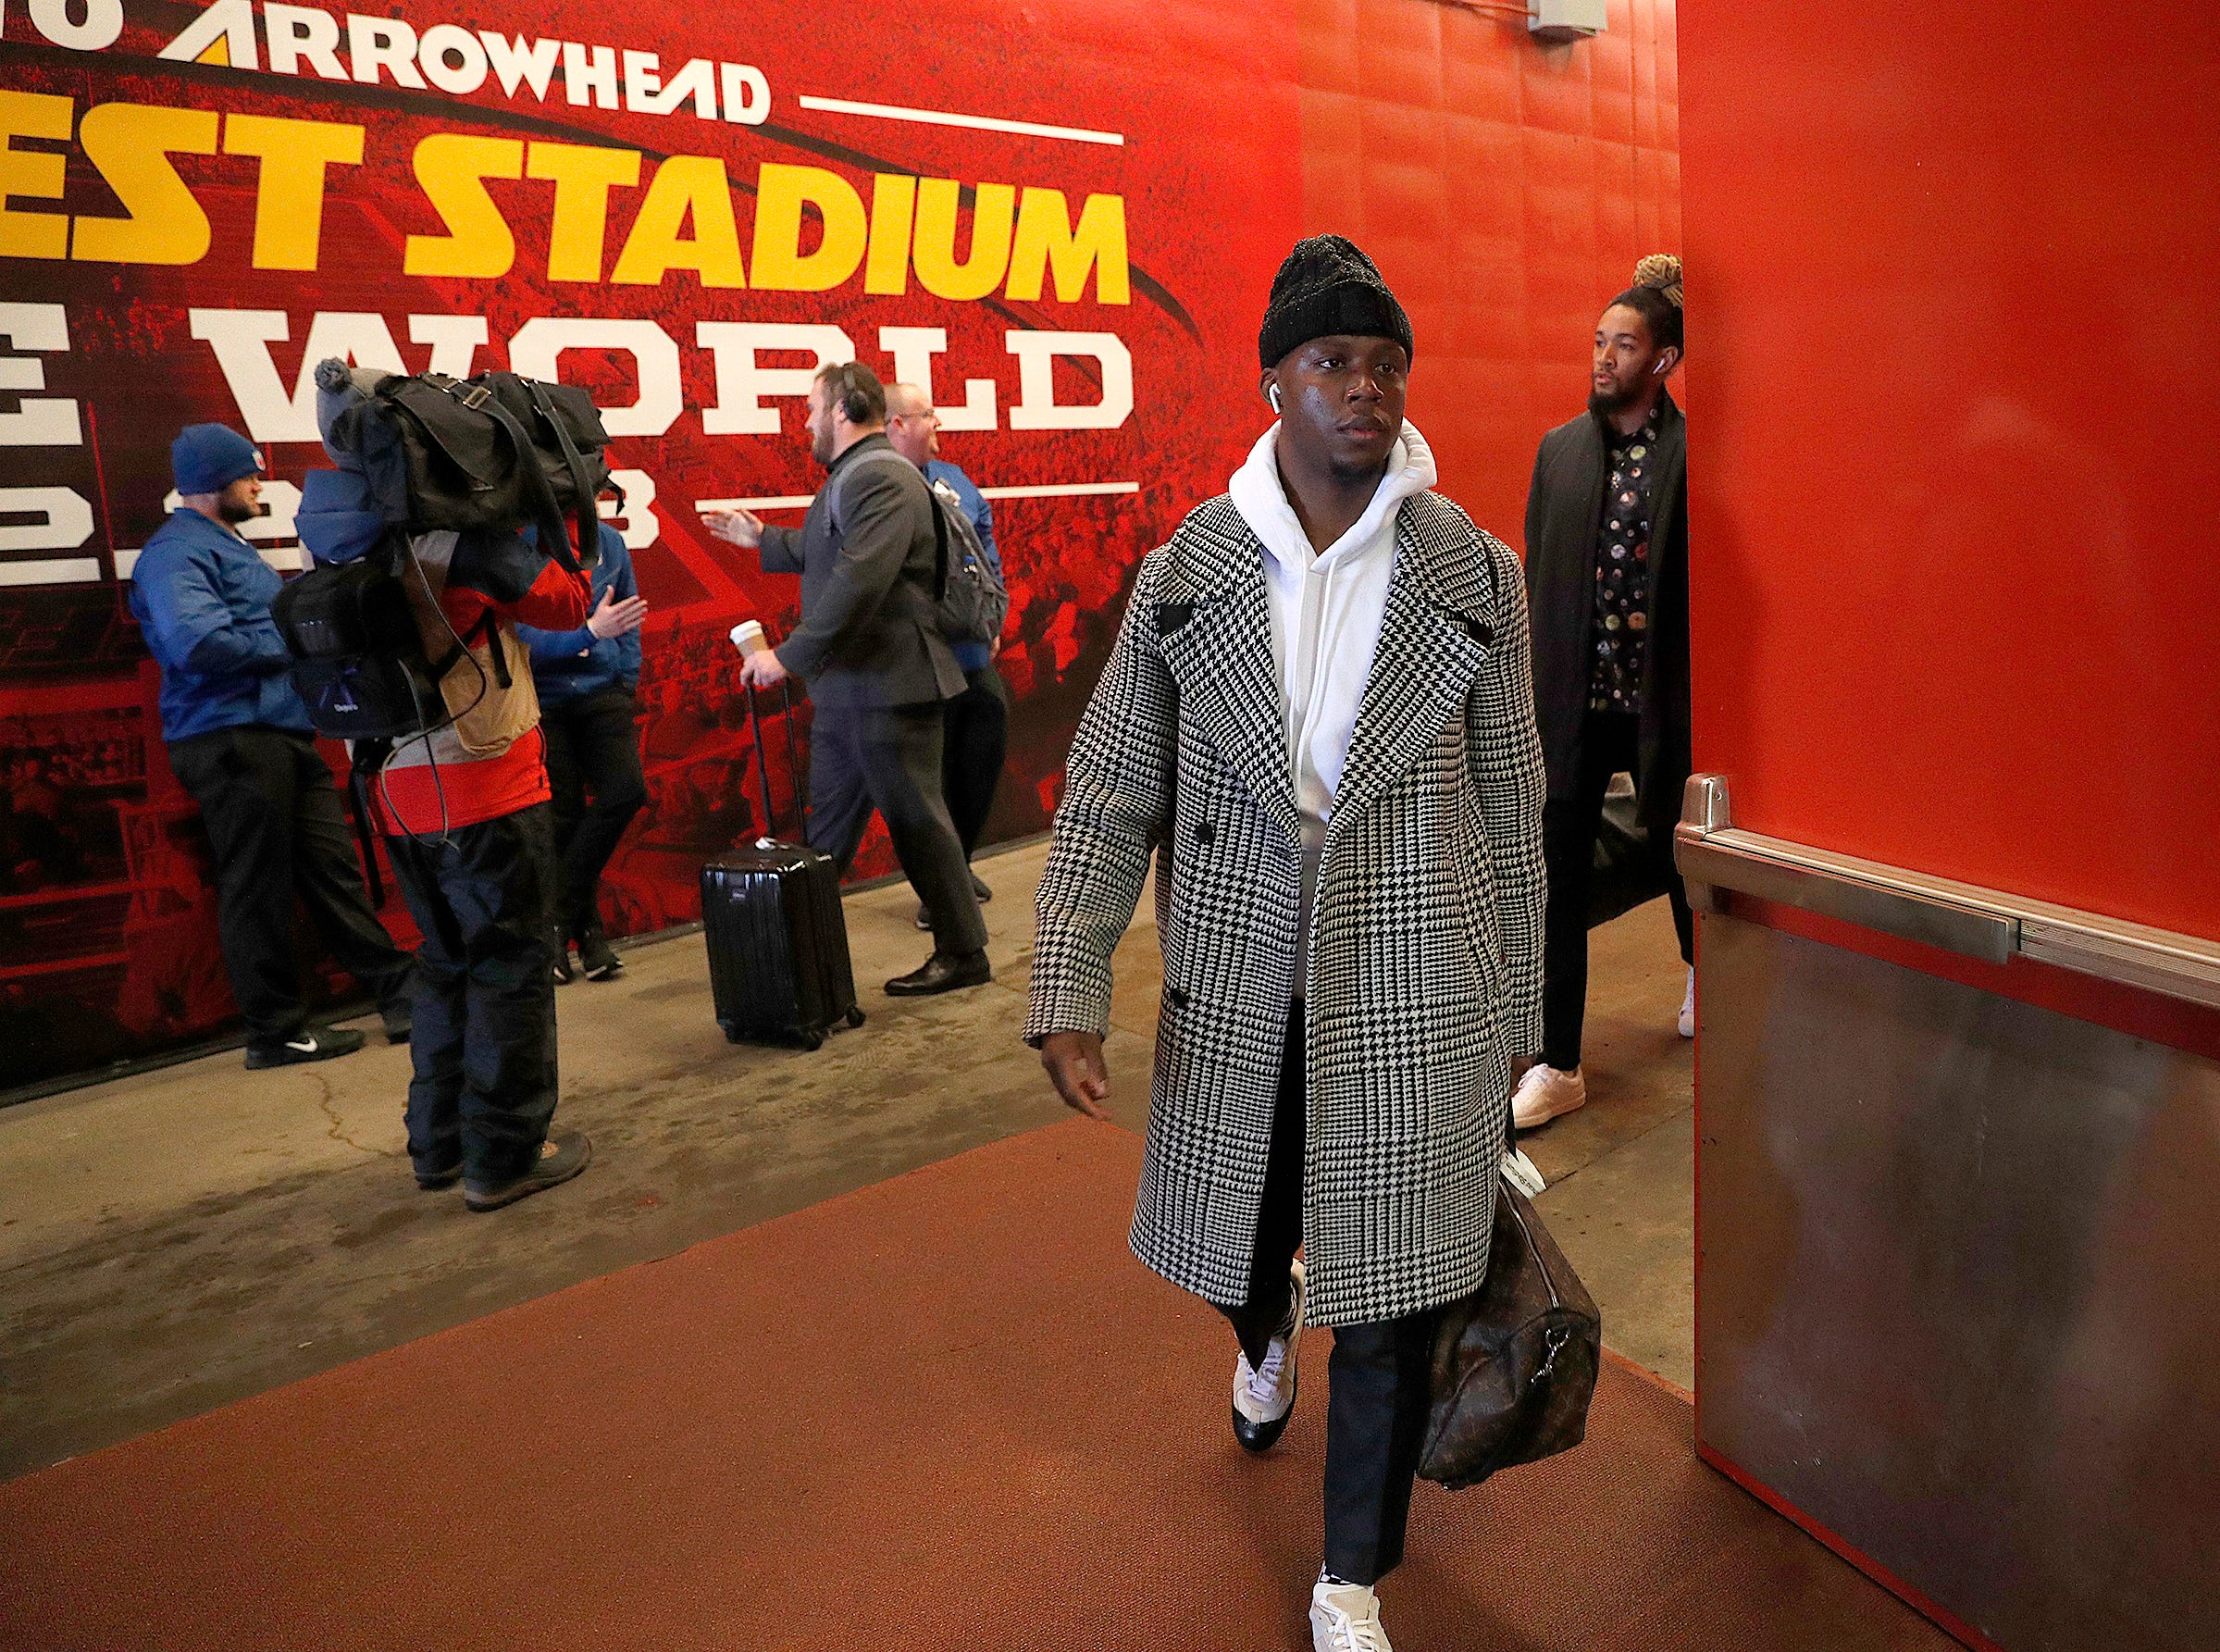 Indianapolis Colts wide receiver Chester Rogers (80) and the Indianapolis Colts arrive for their game against the Kansas City Chiefs at Arrowhead Stadium in Kansas City, MO., on Saturday, Jan. 12, 2019.